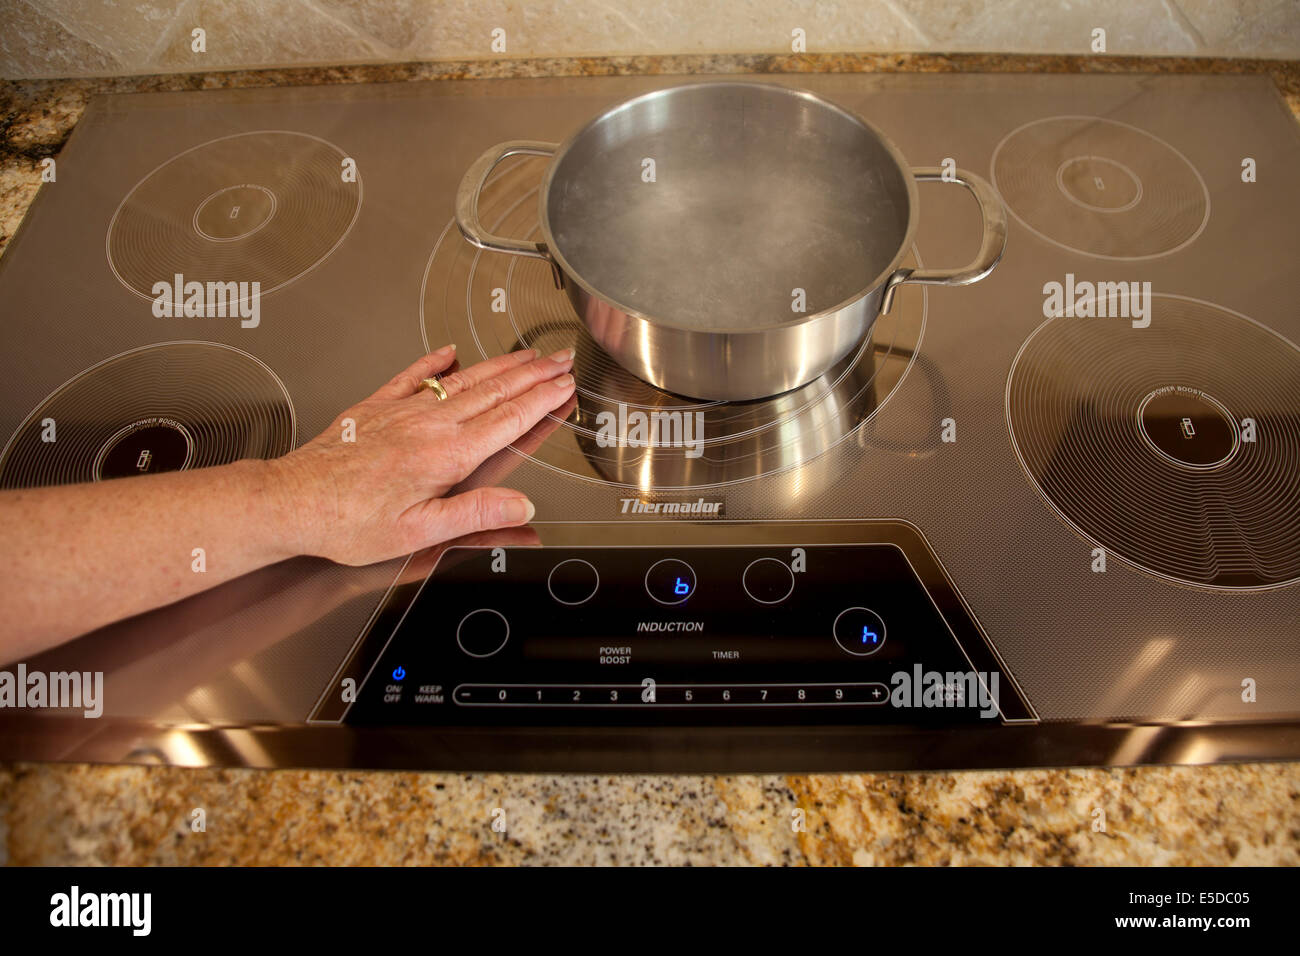 Magnetic energy of Energy saving Thermador Induction cooktop with boiling water Series of 4 images.  MR  © - Stock Image